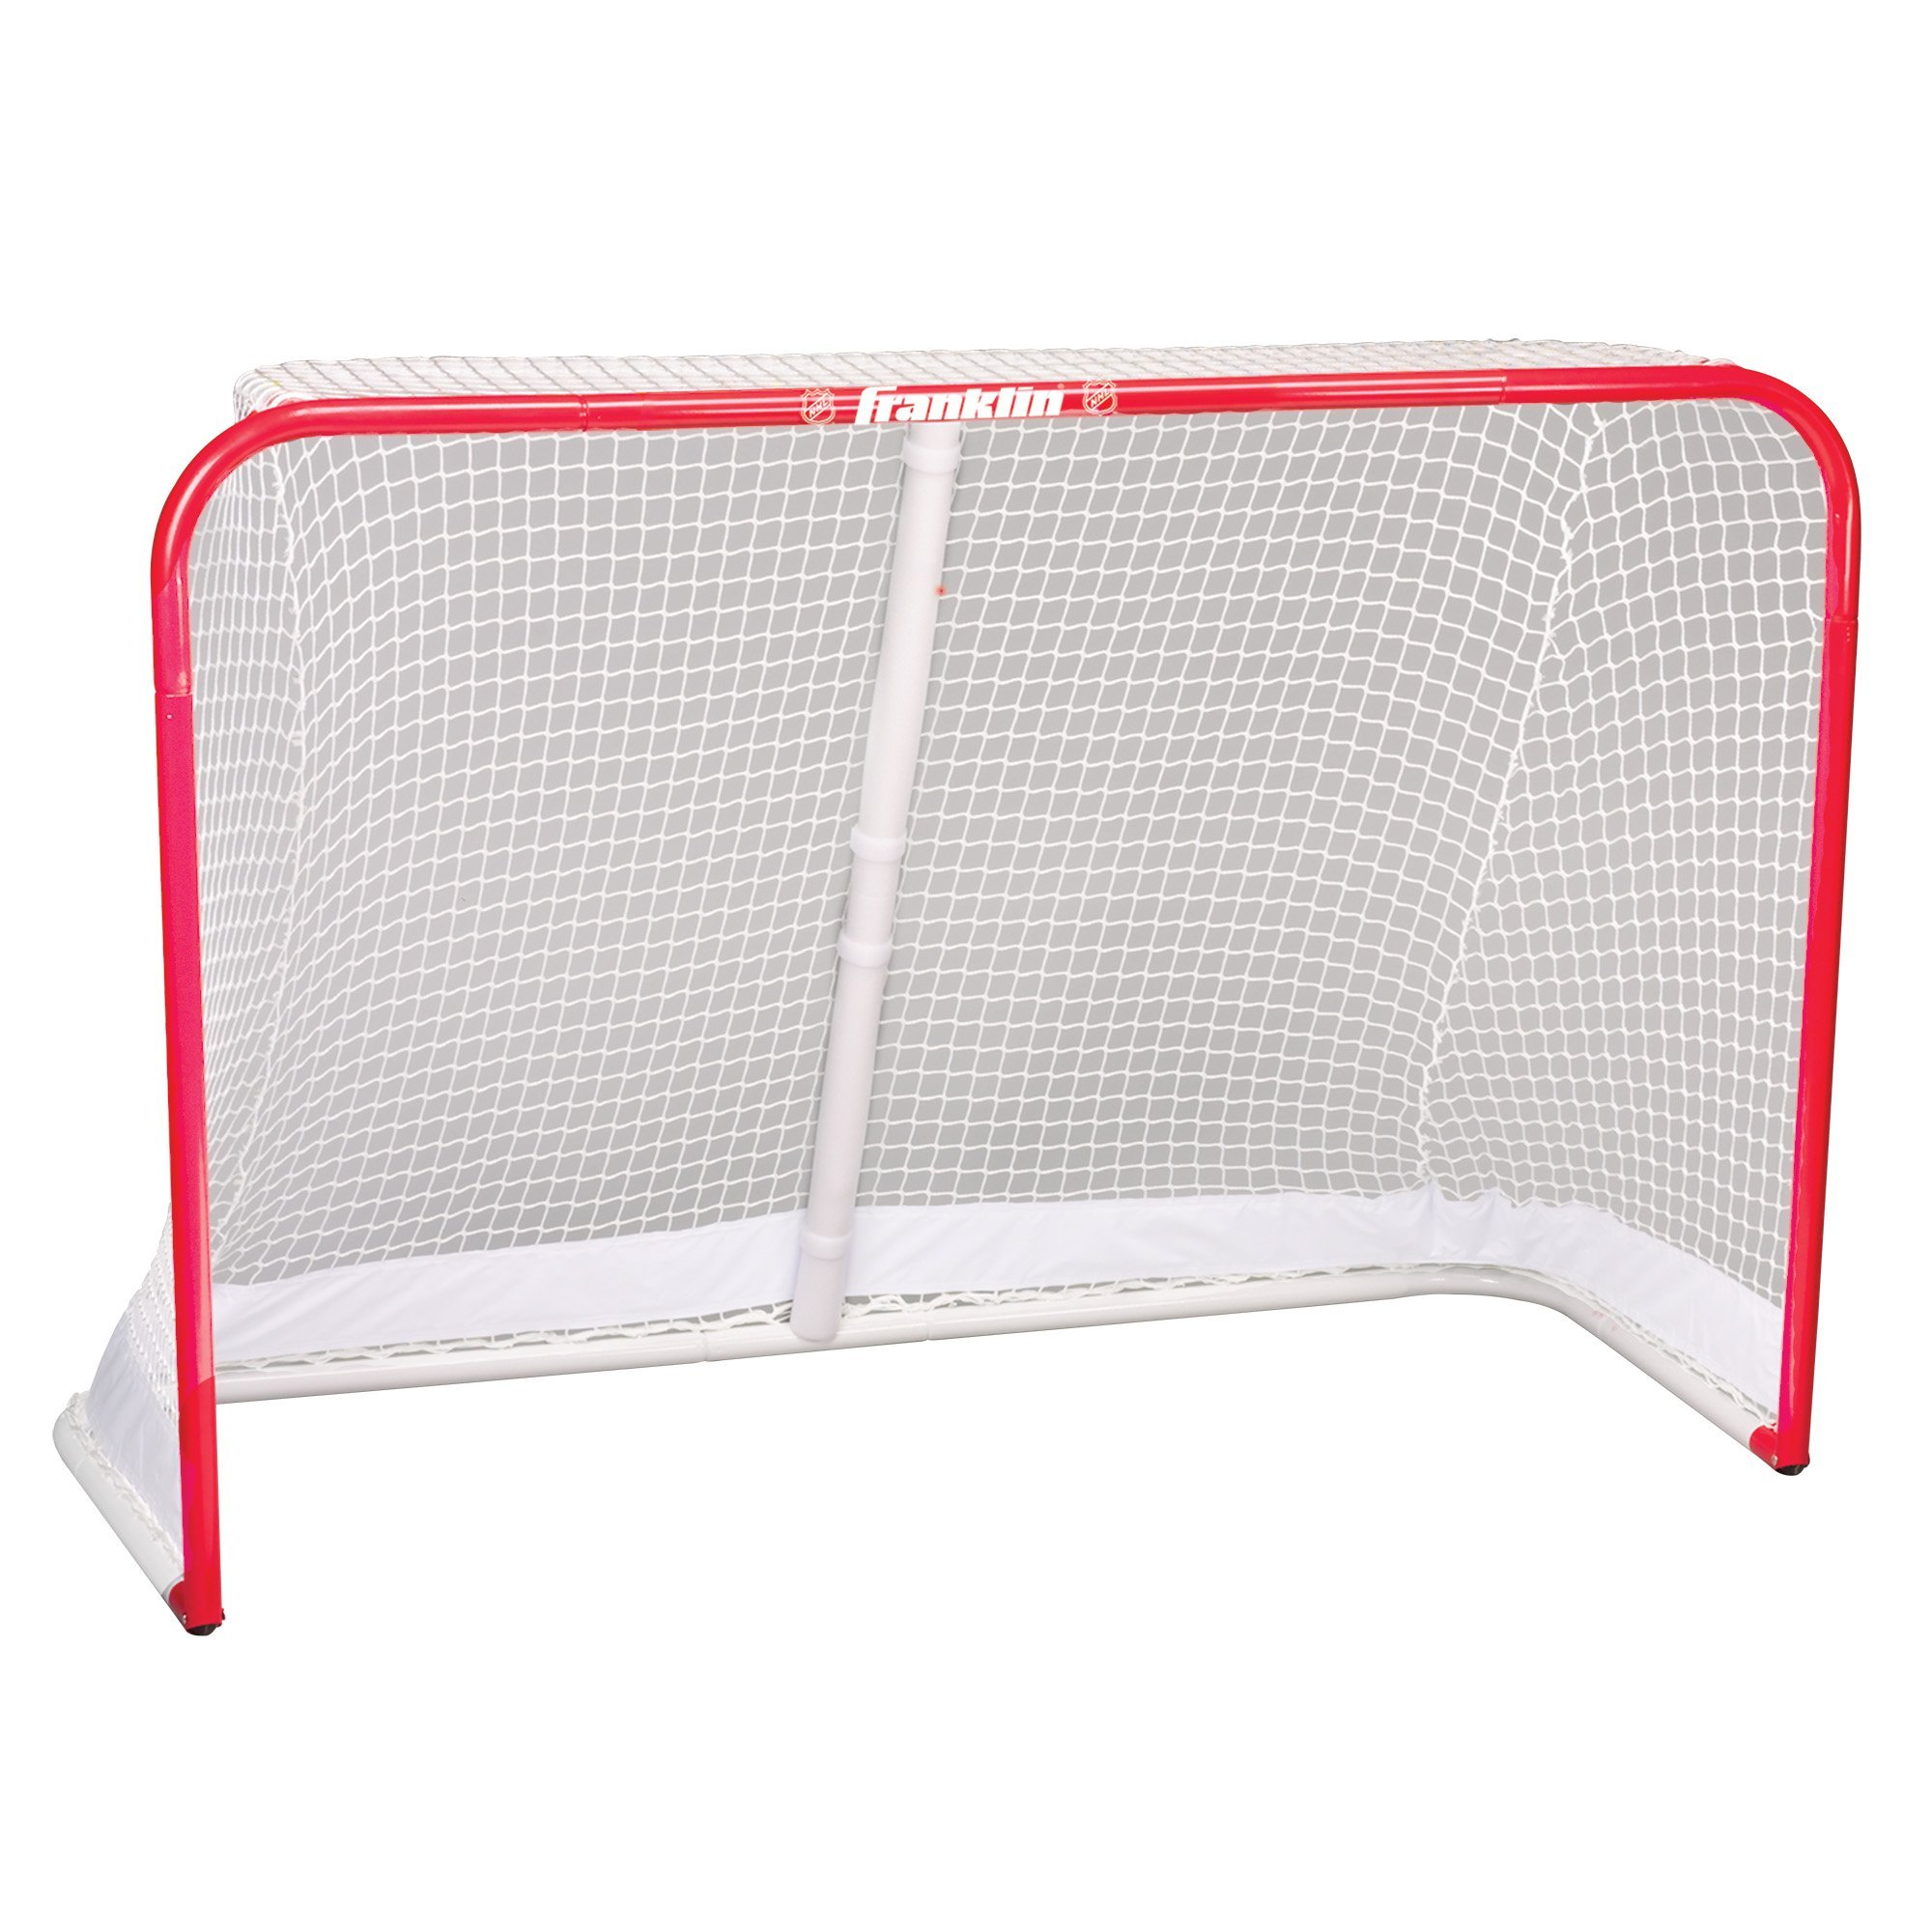 Franklin Sports NHL Championship Steel Street Roller/Hockey Goal (48-Inch x 72-Inch) by Franklin Sports (Image #1)